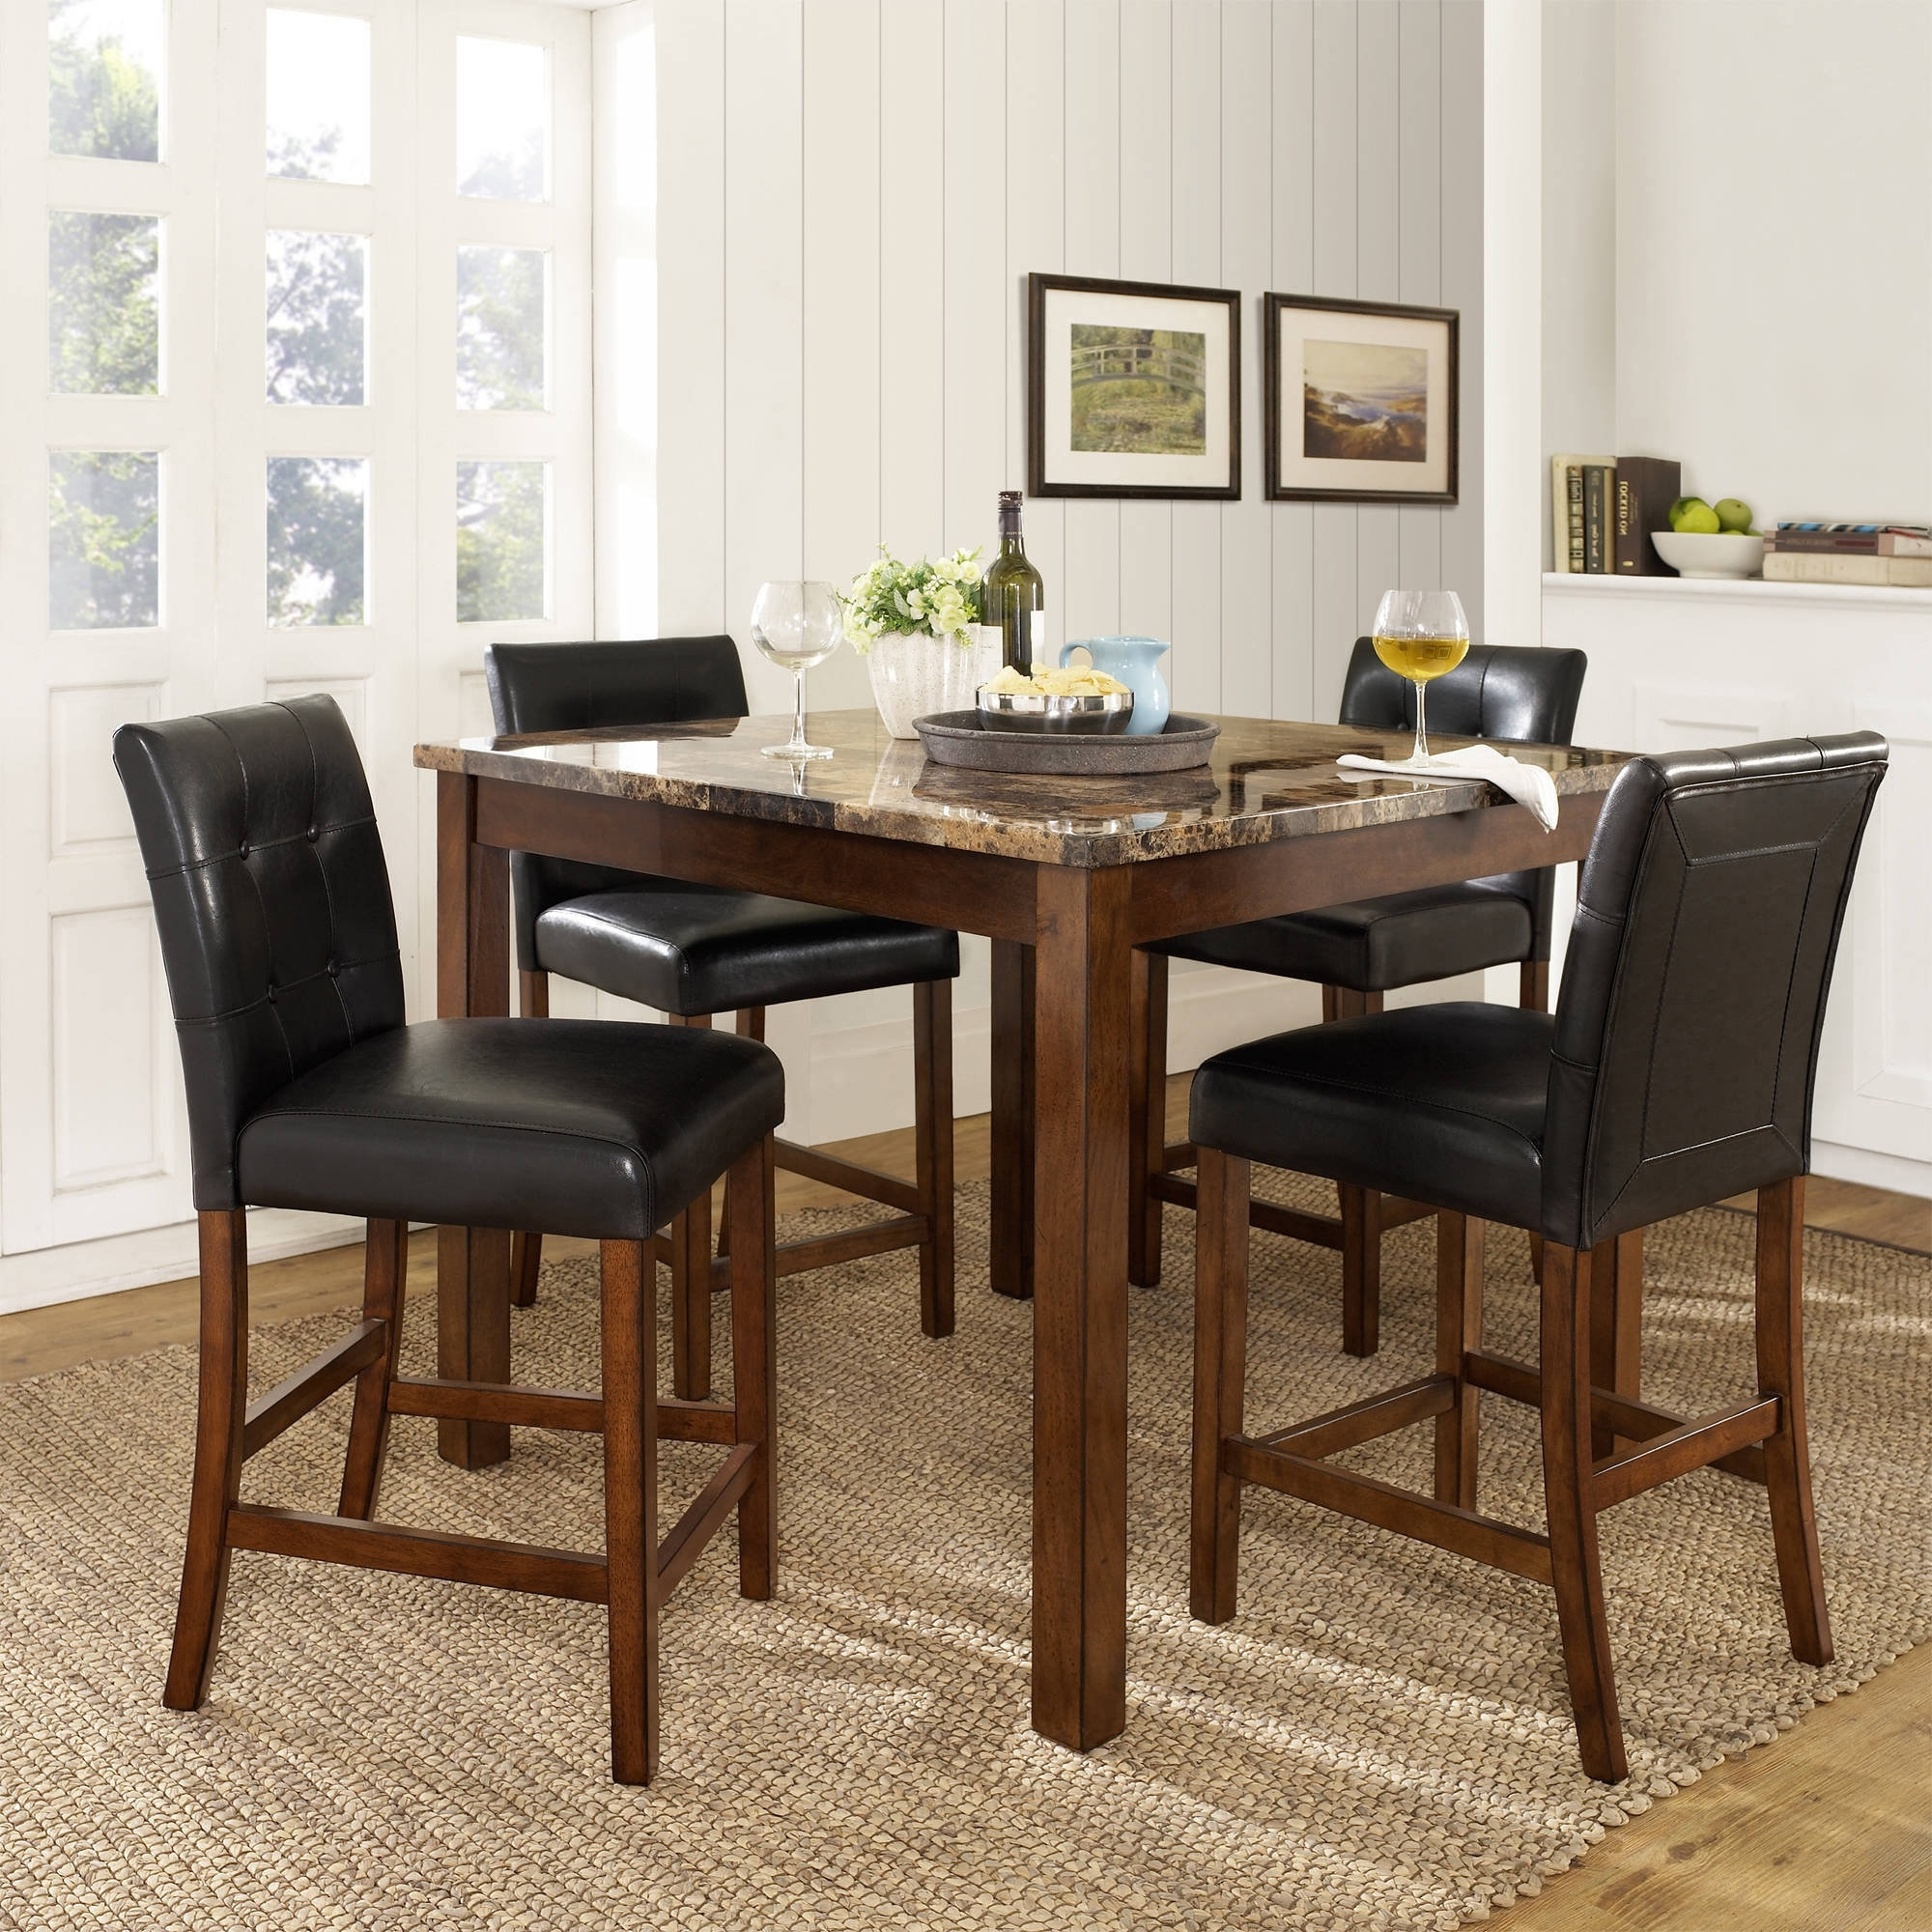 Jaxon 5 Piece Round Dining Sets With Upholstered Chairs Throughout Widely Used Dorel Living Andover 5 Piece Faux Marble Counter Height Dining Set (View 18 of 25)